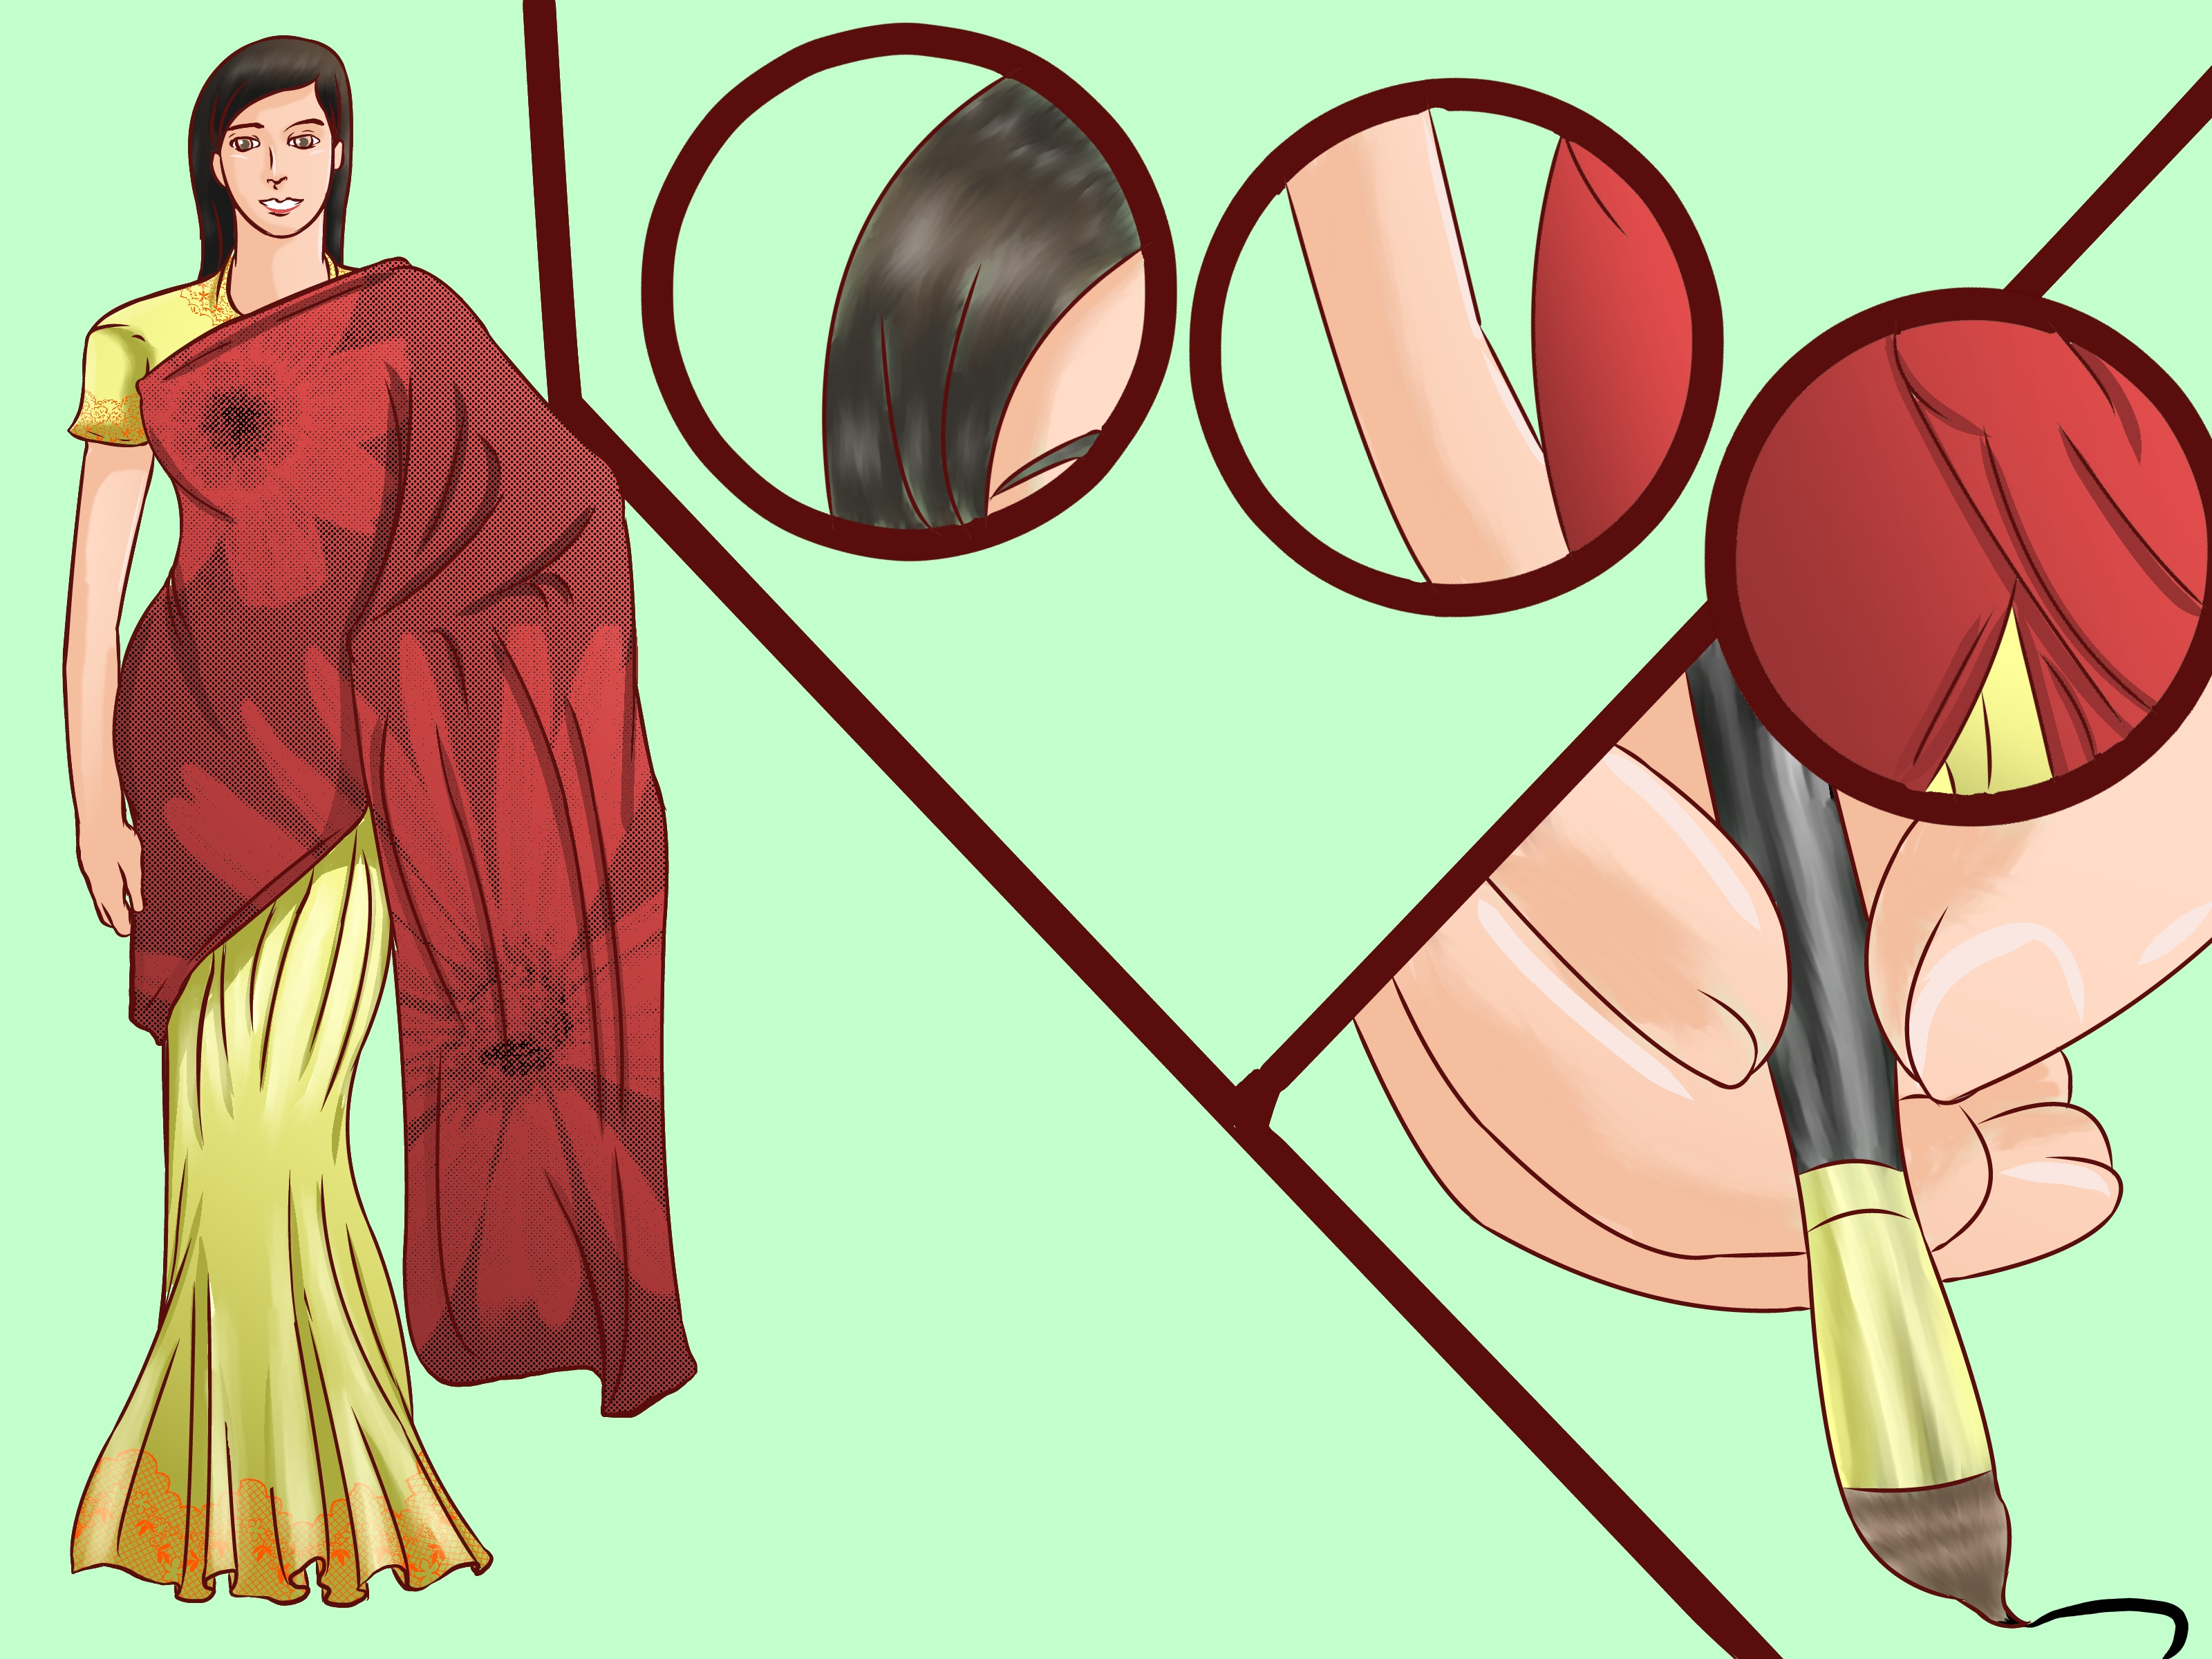 Drawn right woman in india WikiHow Pictures) Draw How to